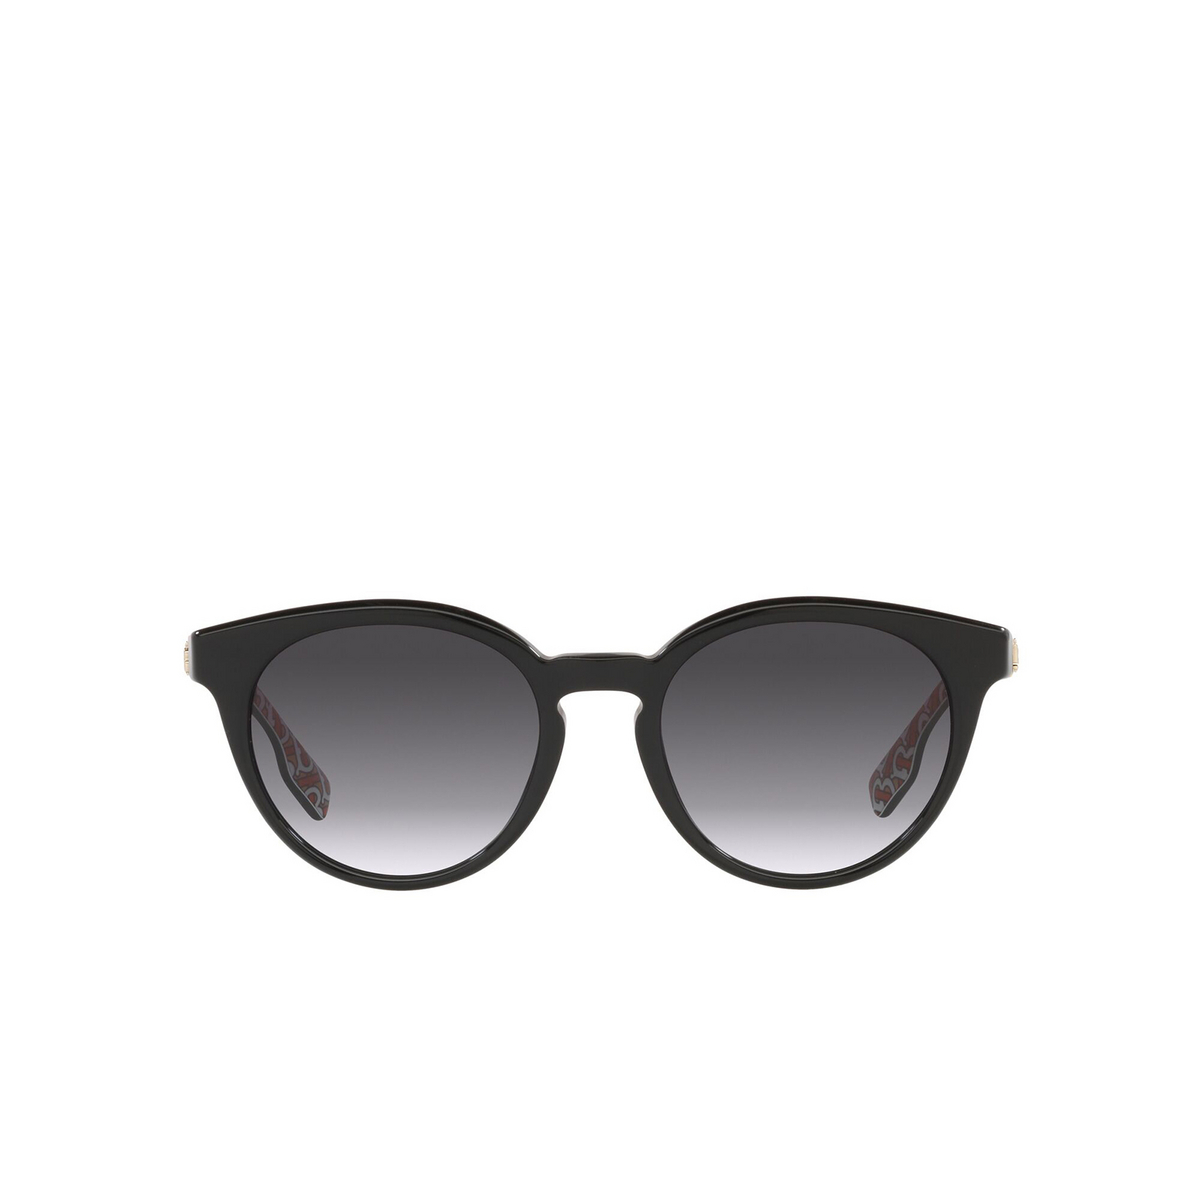 Burberry® Round Sunglasses: Amelia BE4326 color Black 38248G - front view.